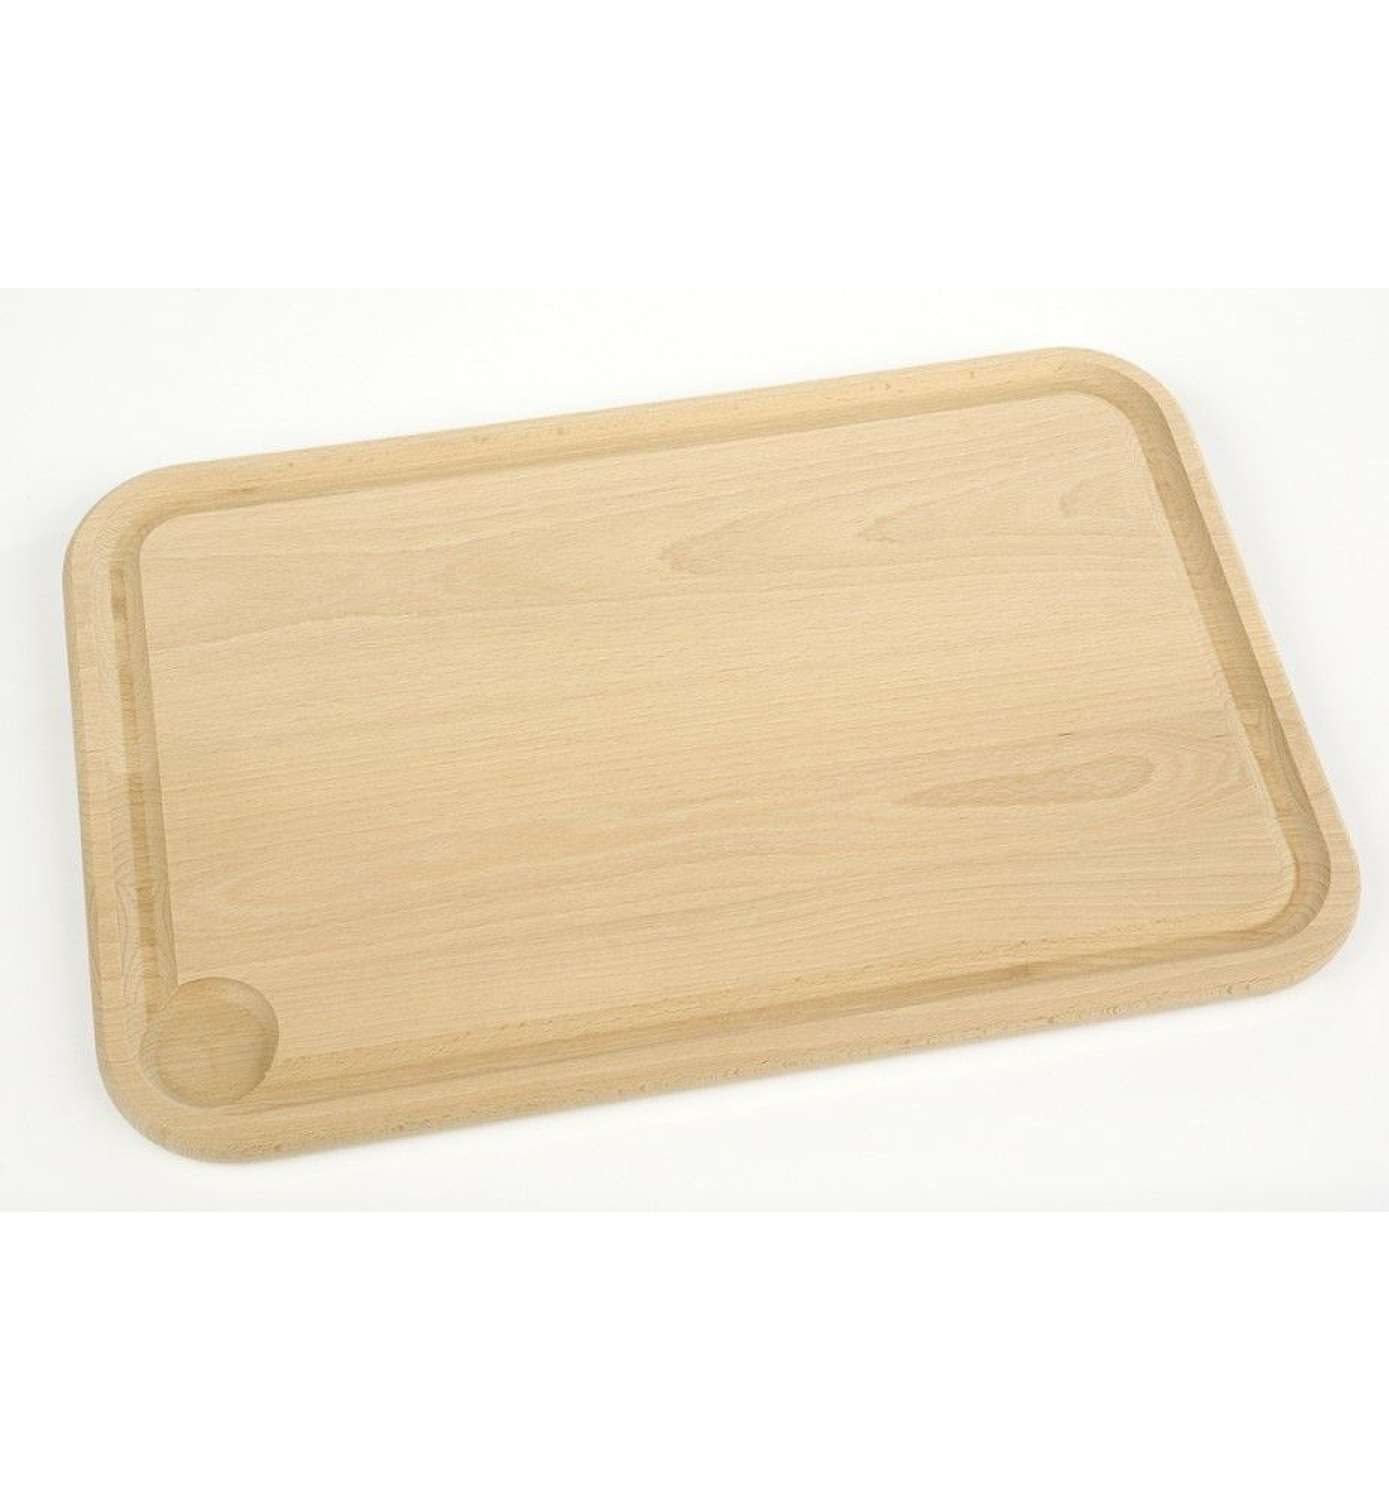 Berard Beech Carving Board with Grooved Edge - Medium